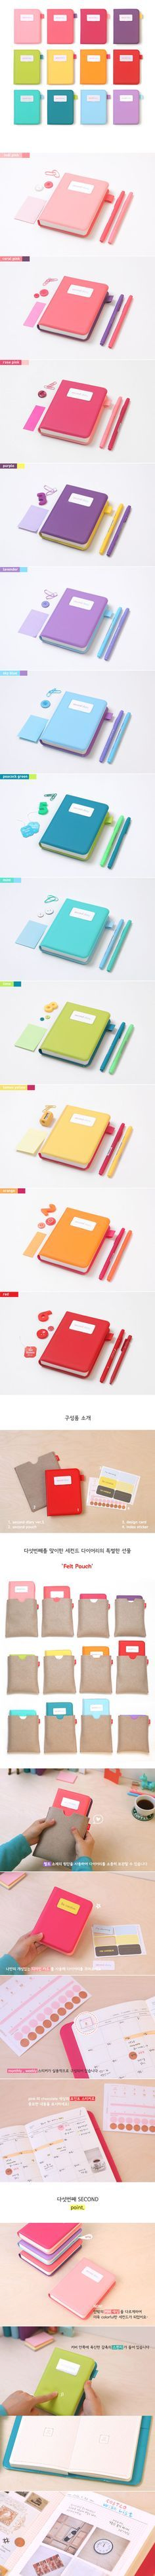 cool office accessories. kstyleme planner journal cool office supplies fun desk accessories